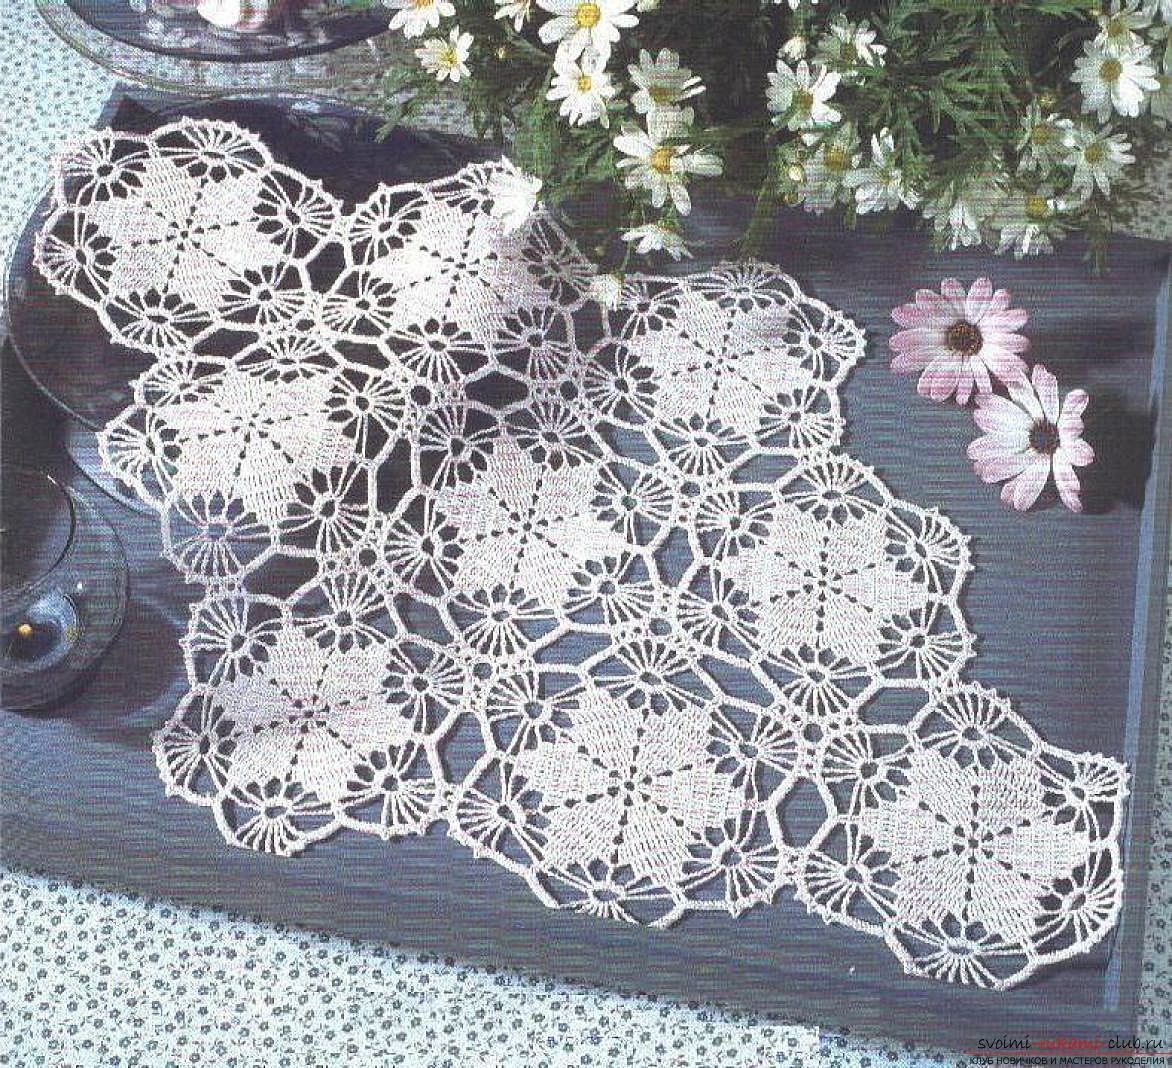 crocheted beautiful patterns. Picture №3